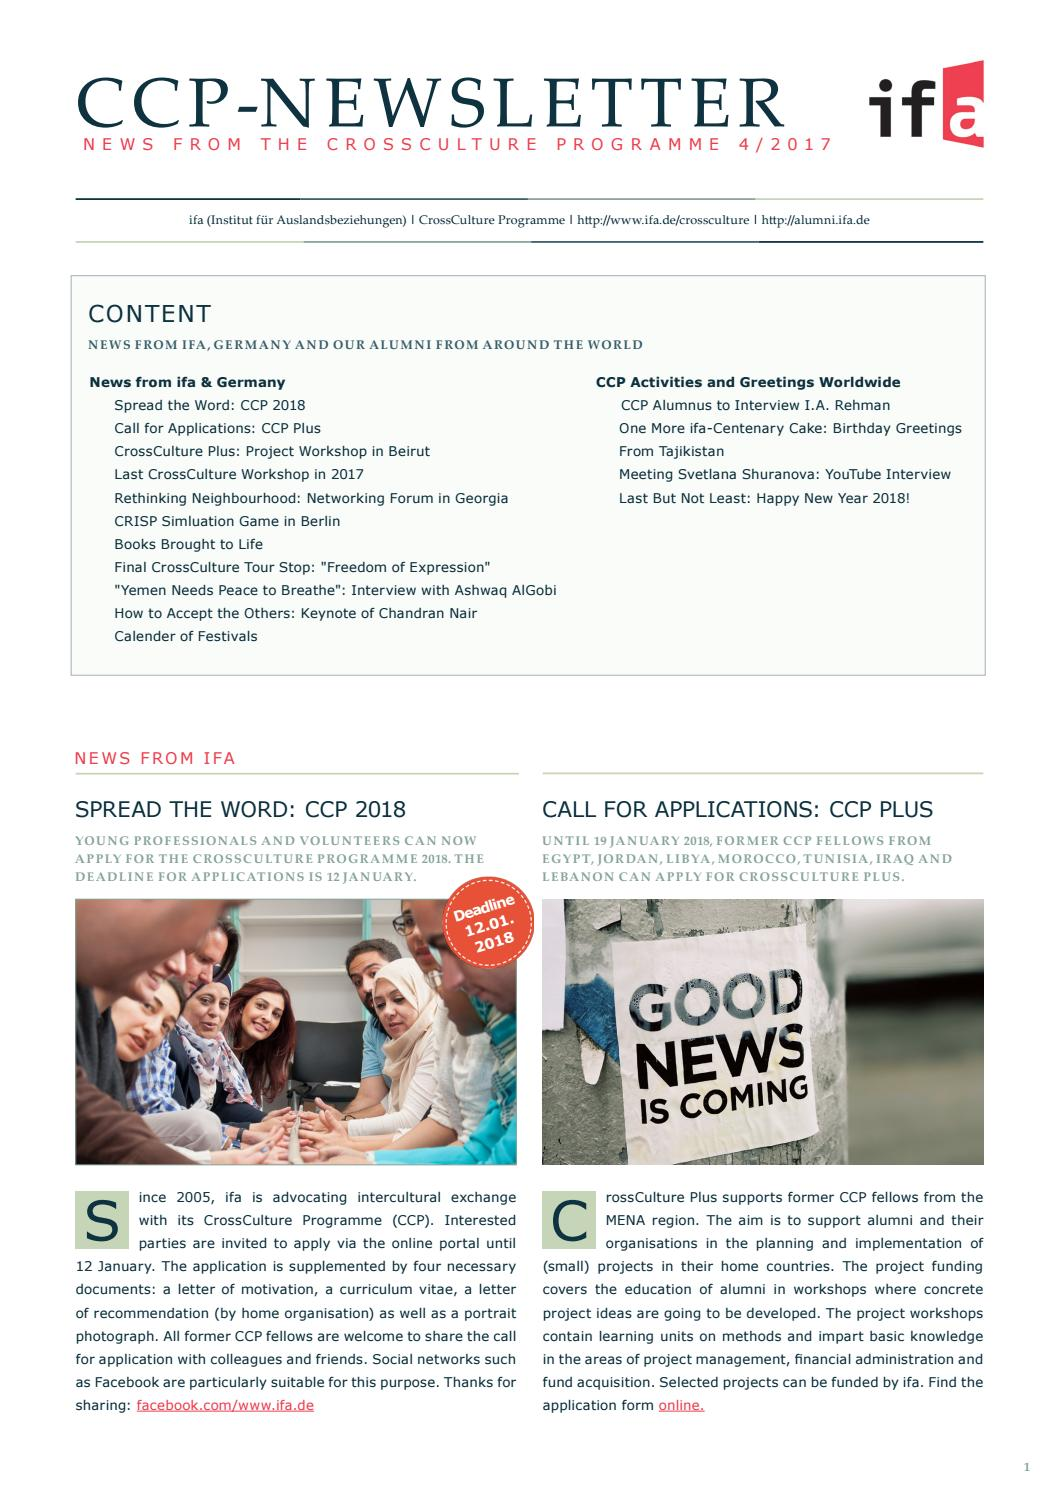 CCP Newsletter 4/2017 by Wolfgang Kuhnle - issuu